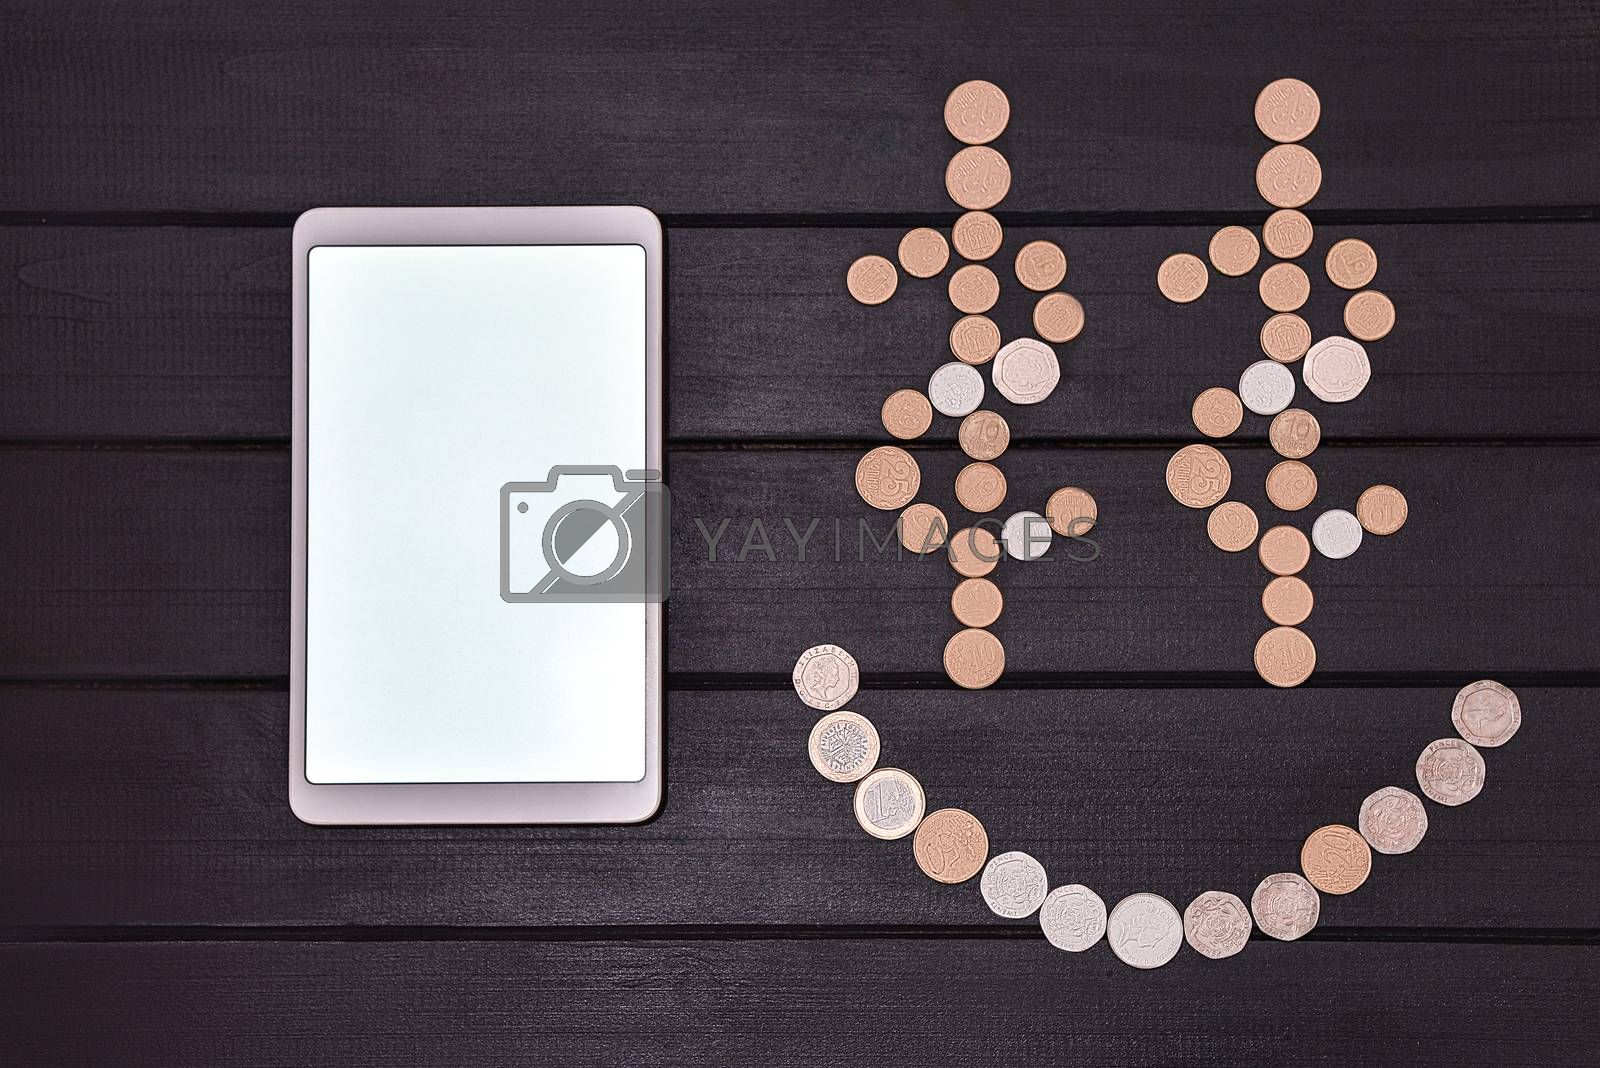 Financial success concept. Smartphone and Coins Formed A Smiley Face emoji on the table. Lucky day. success business. free copyspace